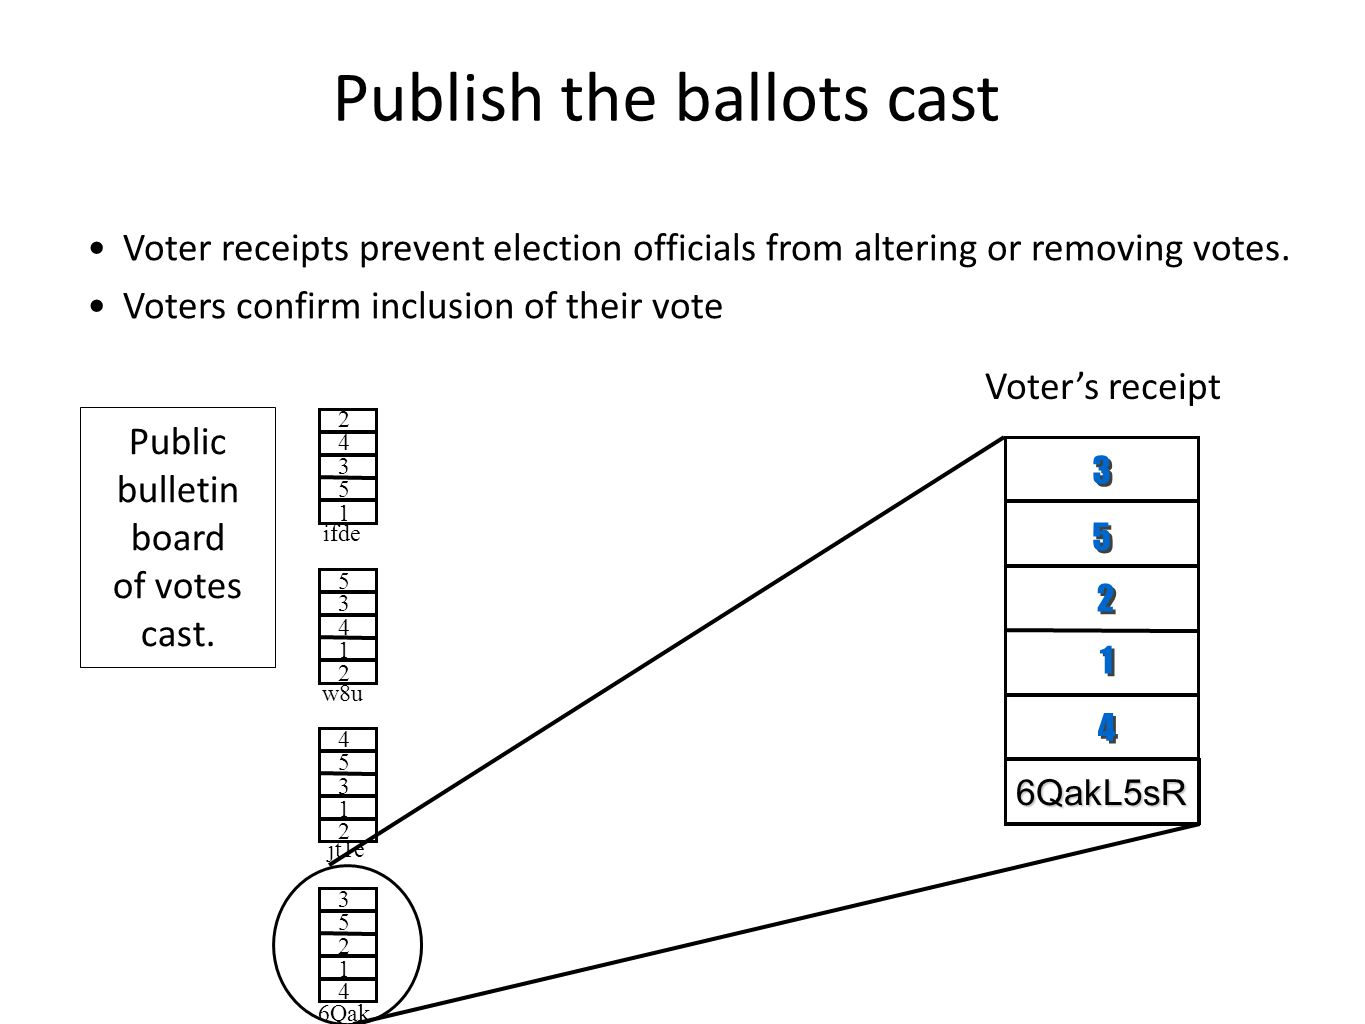 Voter receipts prevent election officials from altering or removing votes. Voters confirm inclusion of their vote Public bulletin board of votes cast.